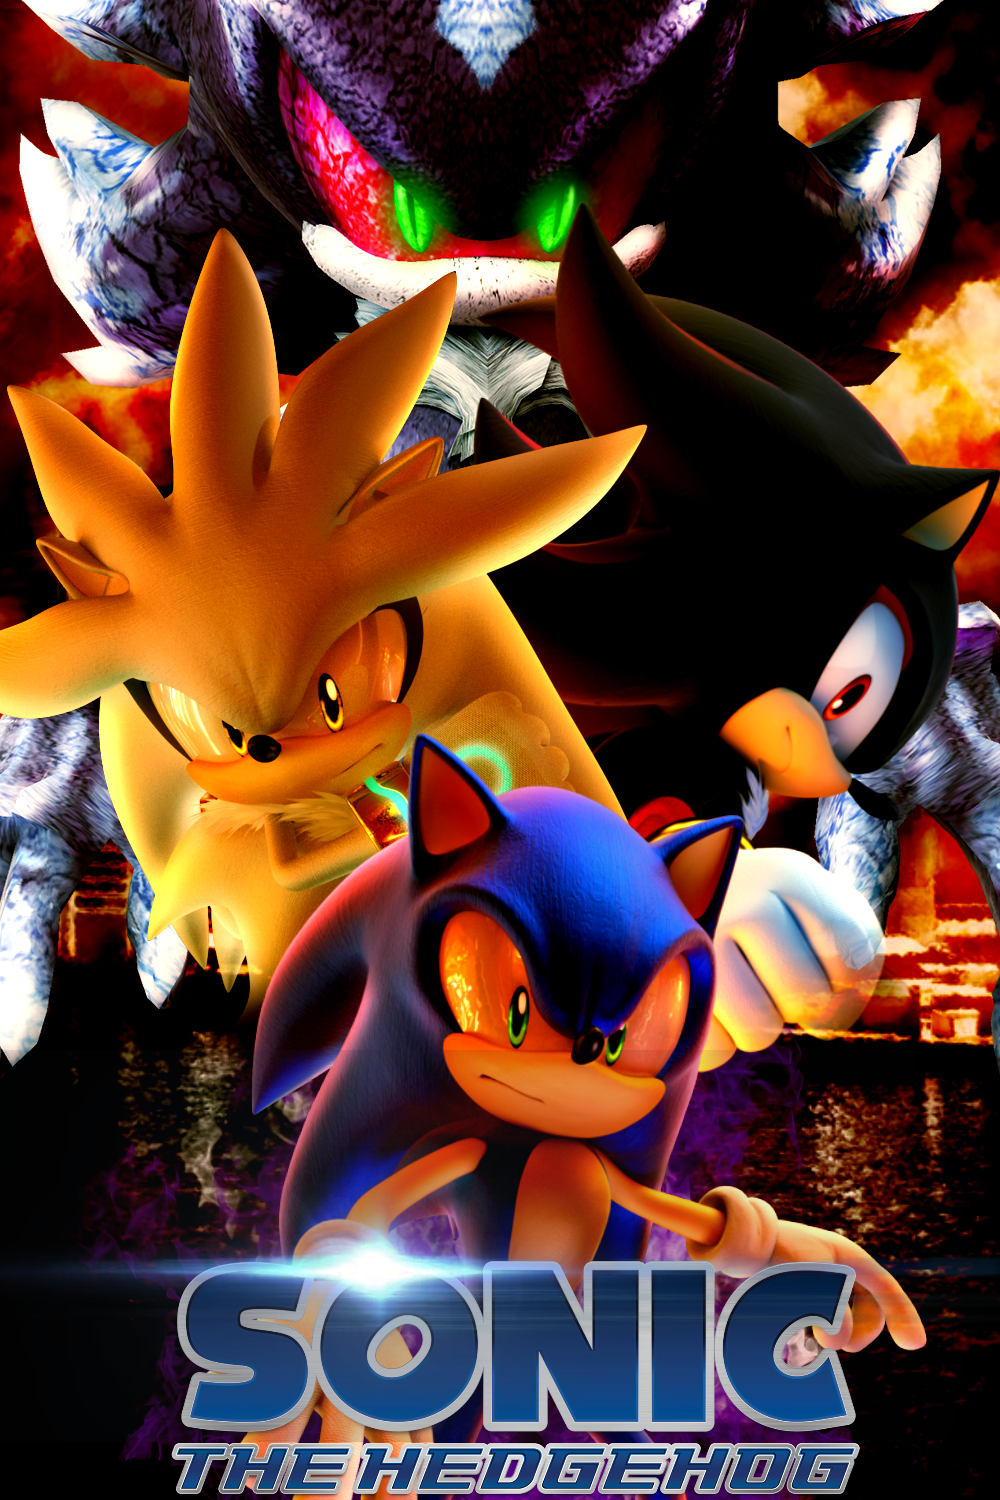 Sonic 2006 Flames Of Disaster Personagens Herois Desenho